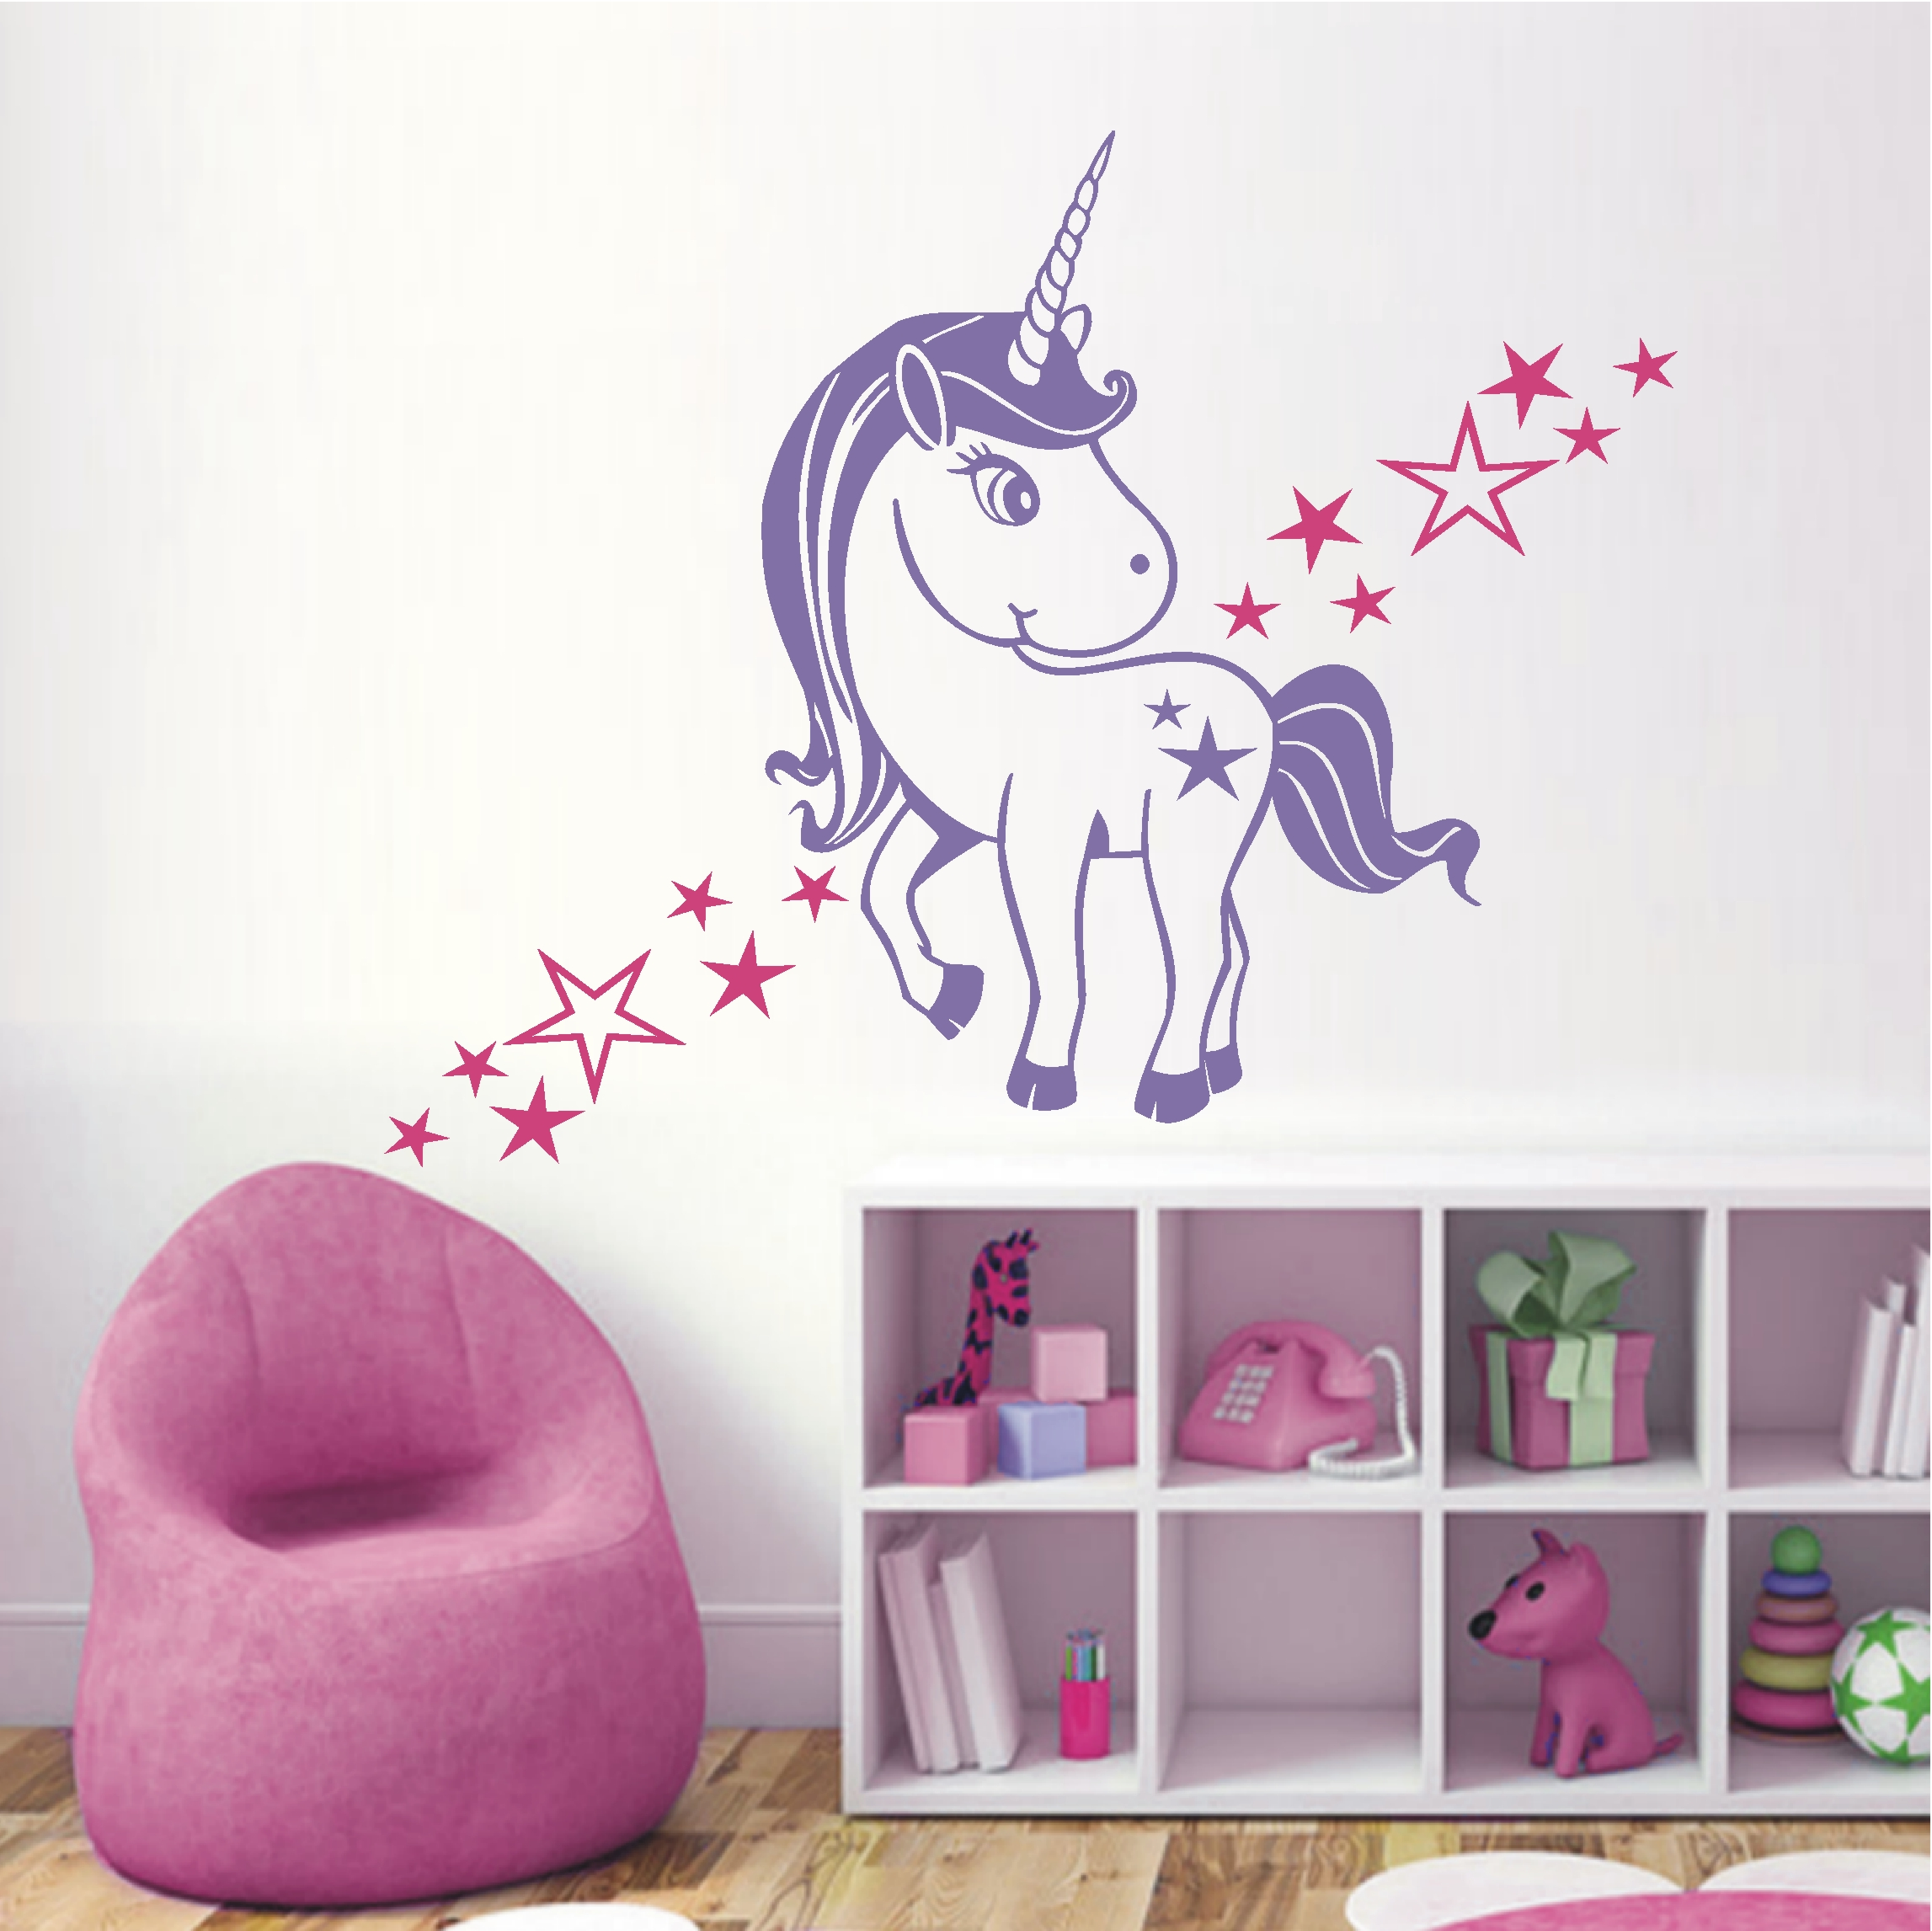 deko shop wandtattoo baby einhorn 2 farbig deko shop. Black Bedroom Furniture Sets. Home Design Ideas